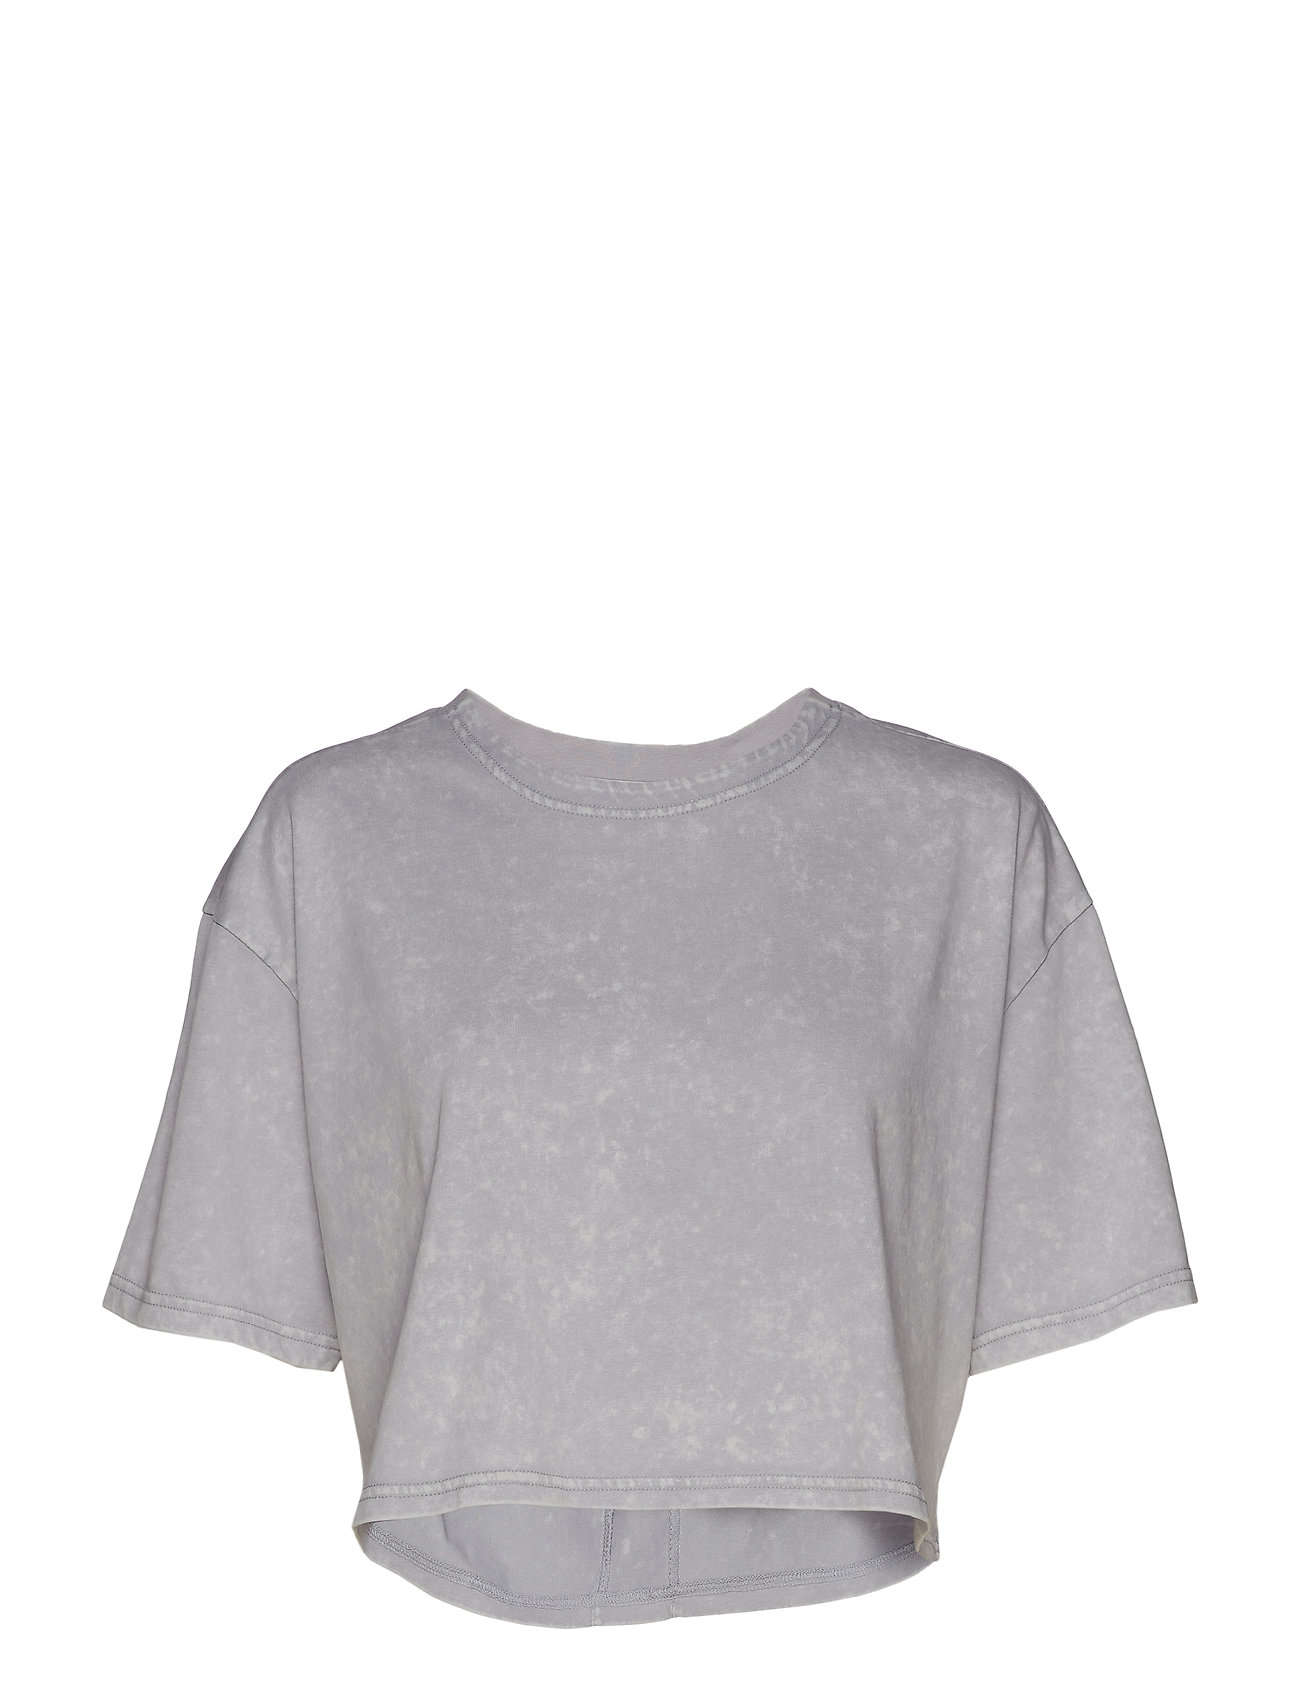 Reebok Performance S Washed Tee - CDGRY2